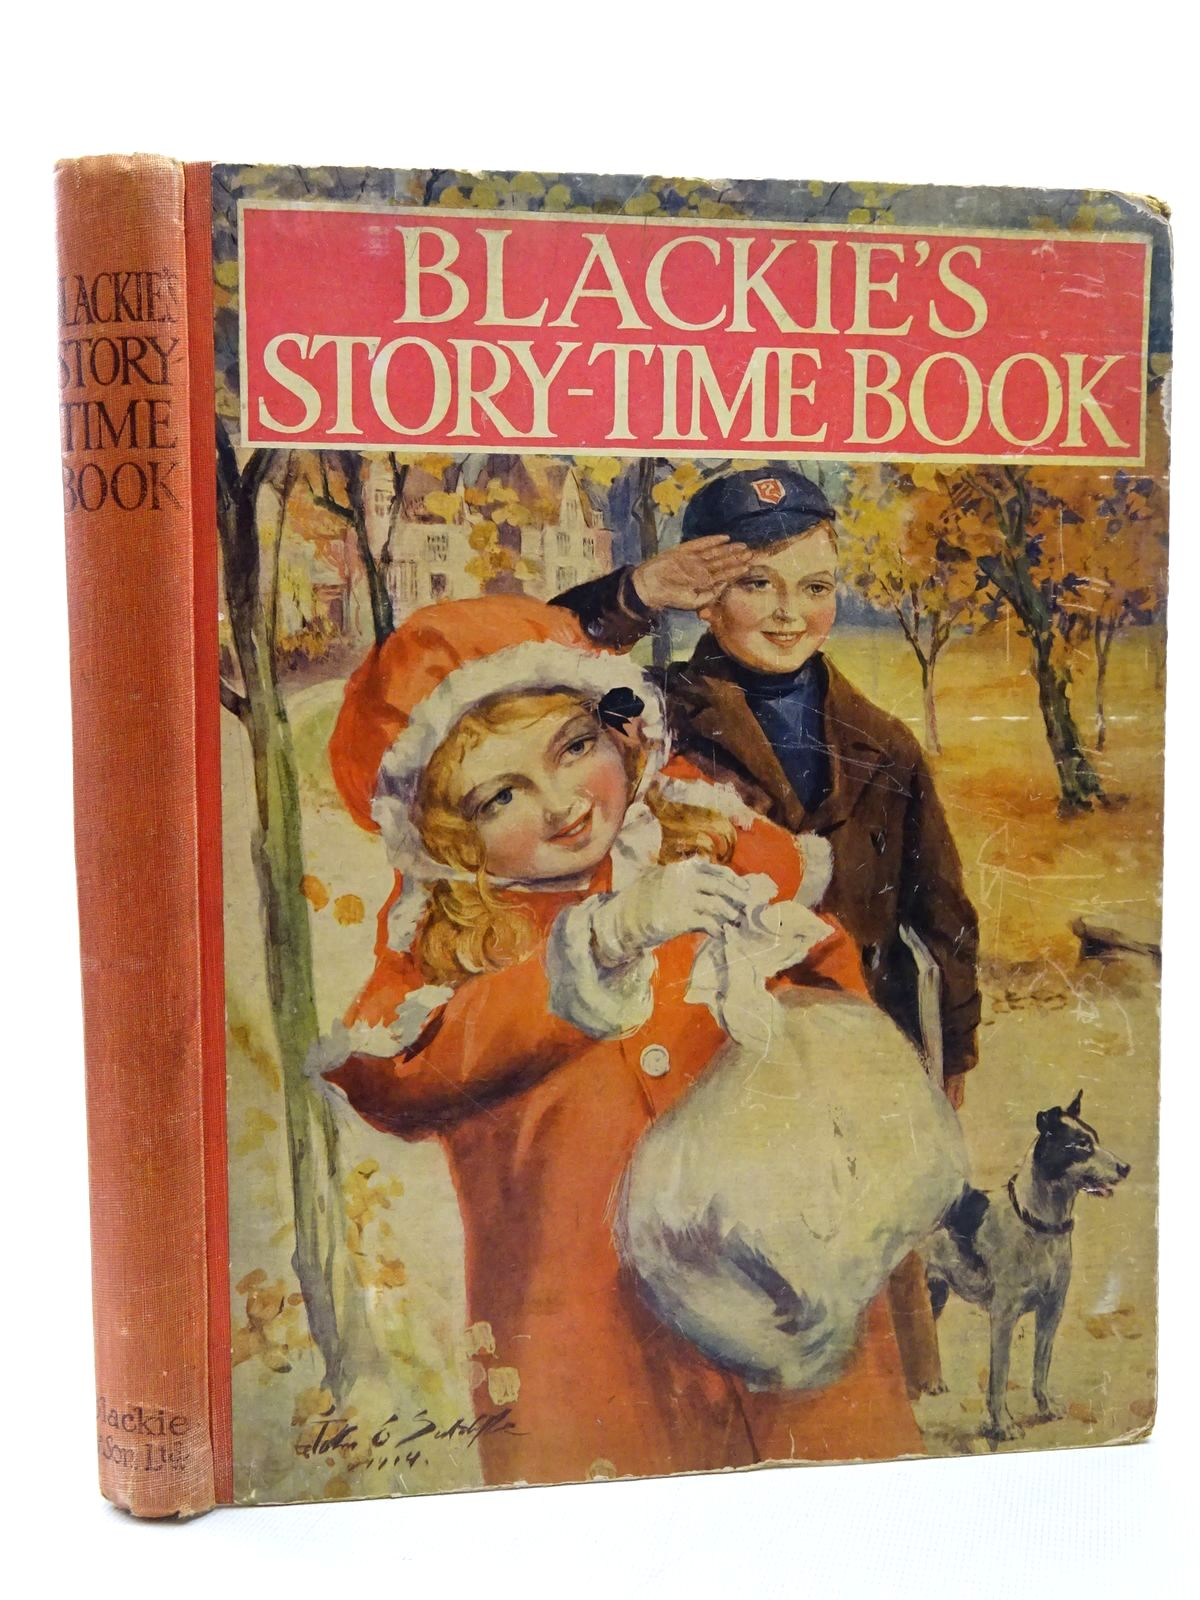 Photo of BLACKIE'S STORY-TIME BOOK written by Tent, Chris<br />Davidson, Gladys<br />Wilson, Theodora Wilson<br />Byron, May<br />Harrison, Florence<br />et al, illustrated by Richardson, Agnes<br />Maybank, Thomas<br />Earnshaw, Harold C.<br />Wain, Louis<br />Harrison, Florence<br />Buchanan, N.<br />Cowham, Hilda<br />Brock, H.M.<br />et al., published by Blackie & Son Ltd. (STOCK CODE: 2124405)  for sale by Stella & Rose's Books